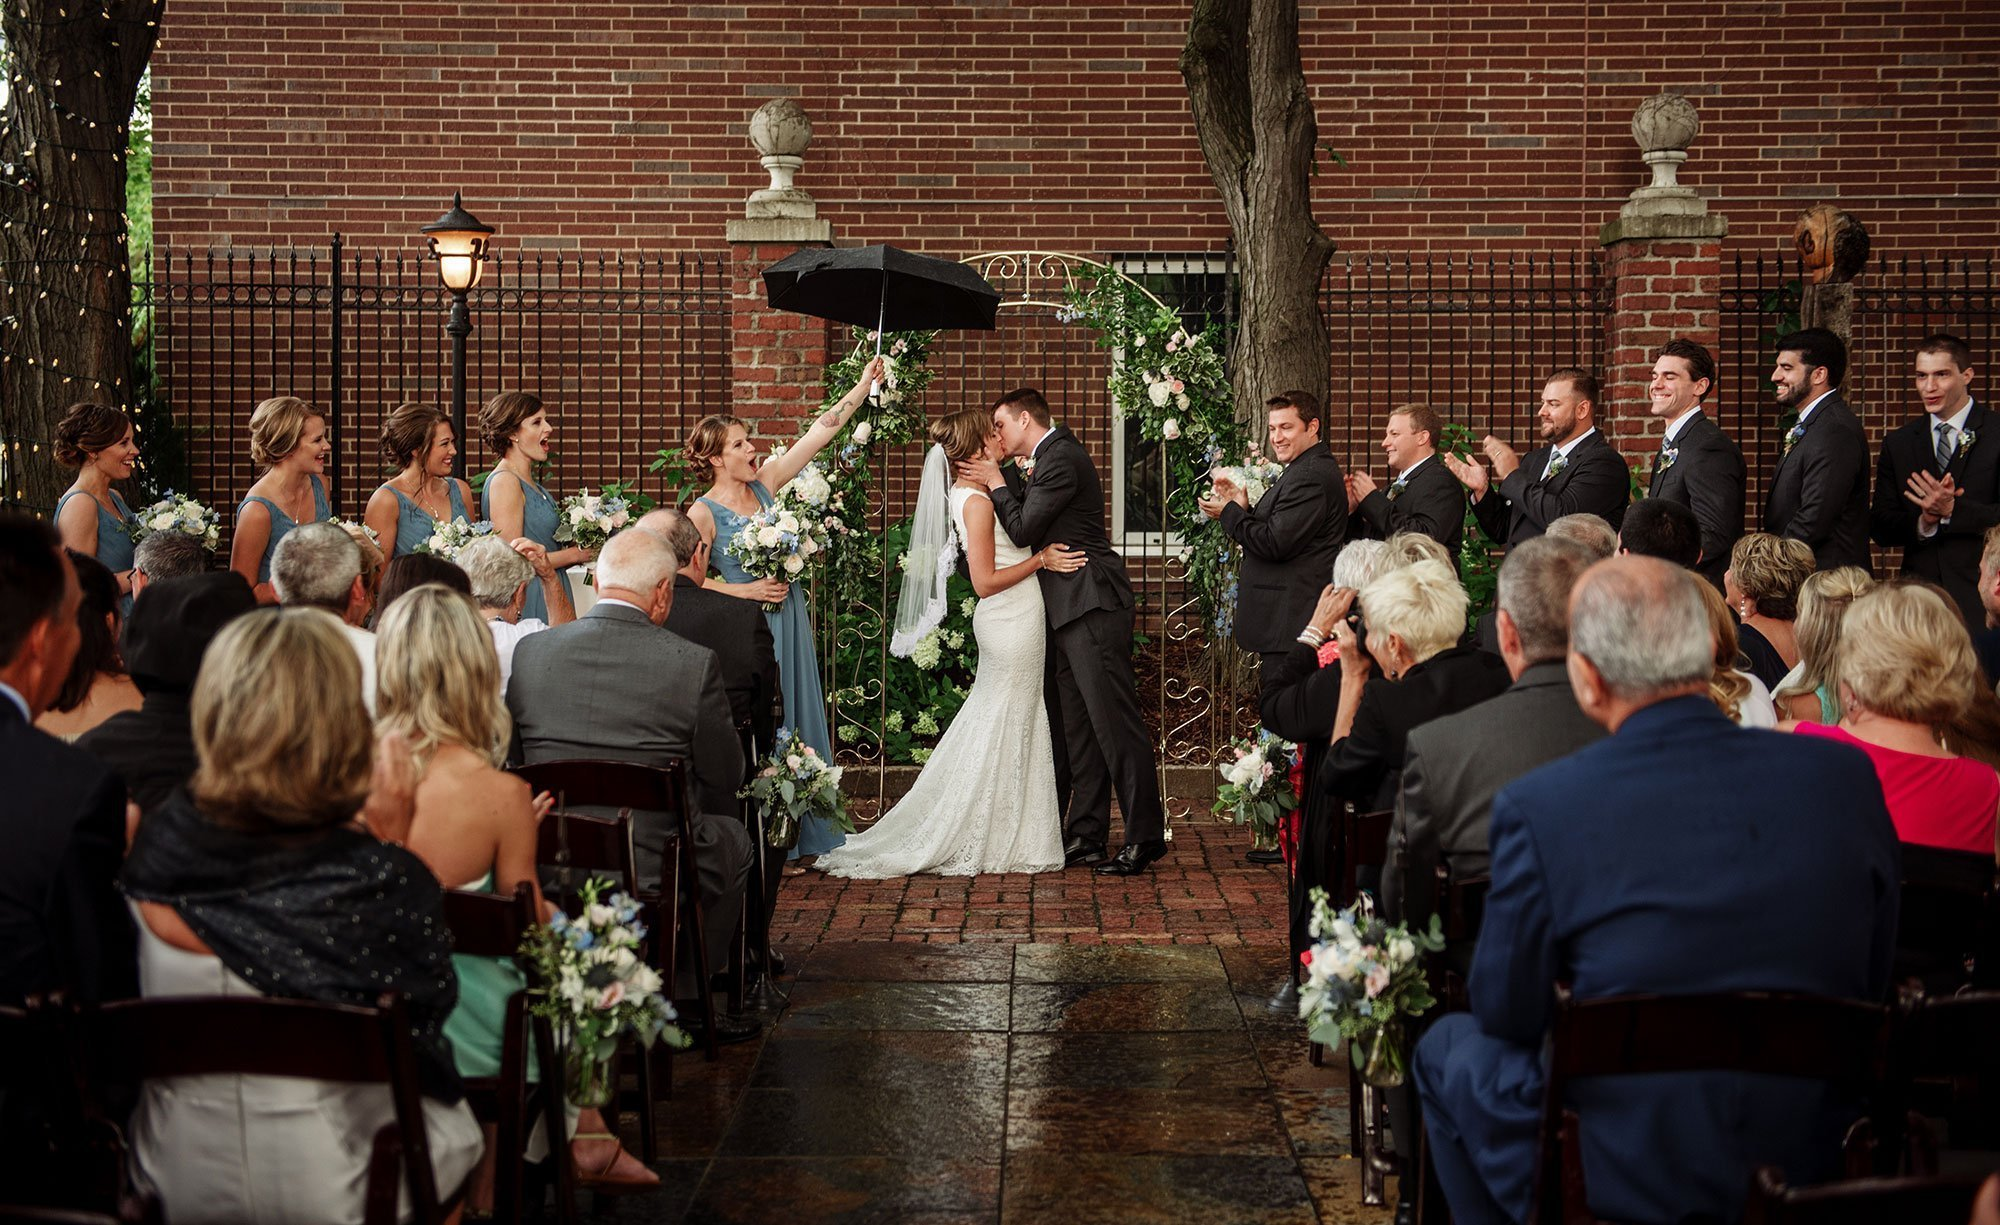 header image minneapolis event center wedding ceremony in rain